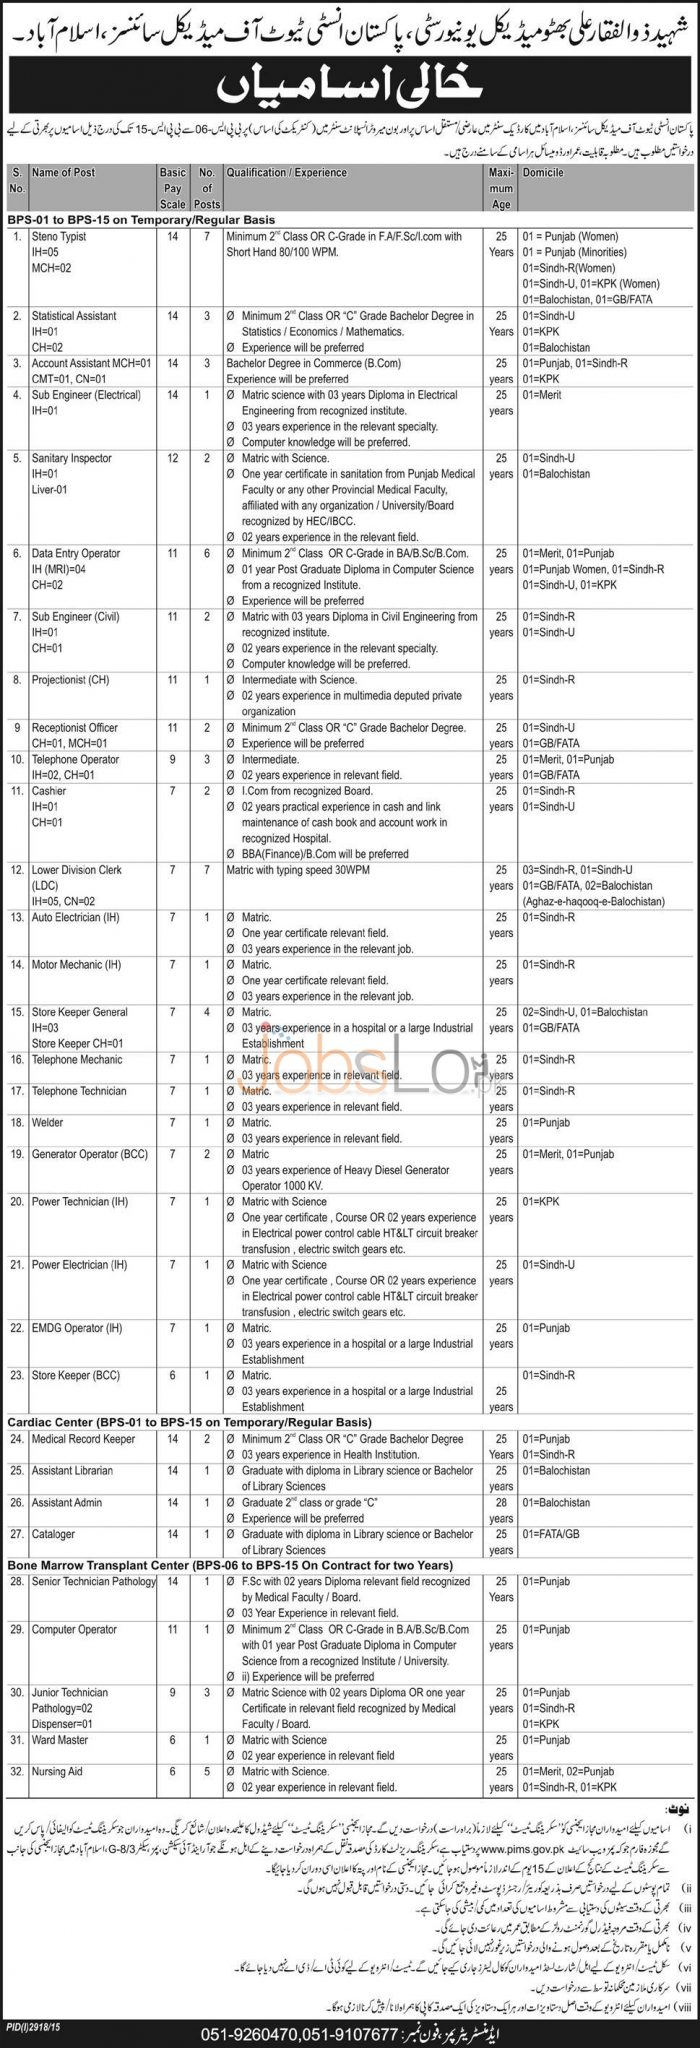 www.pims.gov.pk Jobs 10 December 2015 Download Application